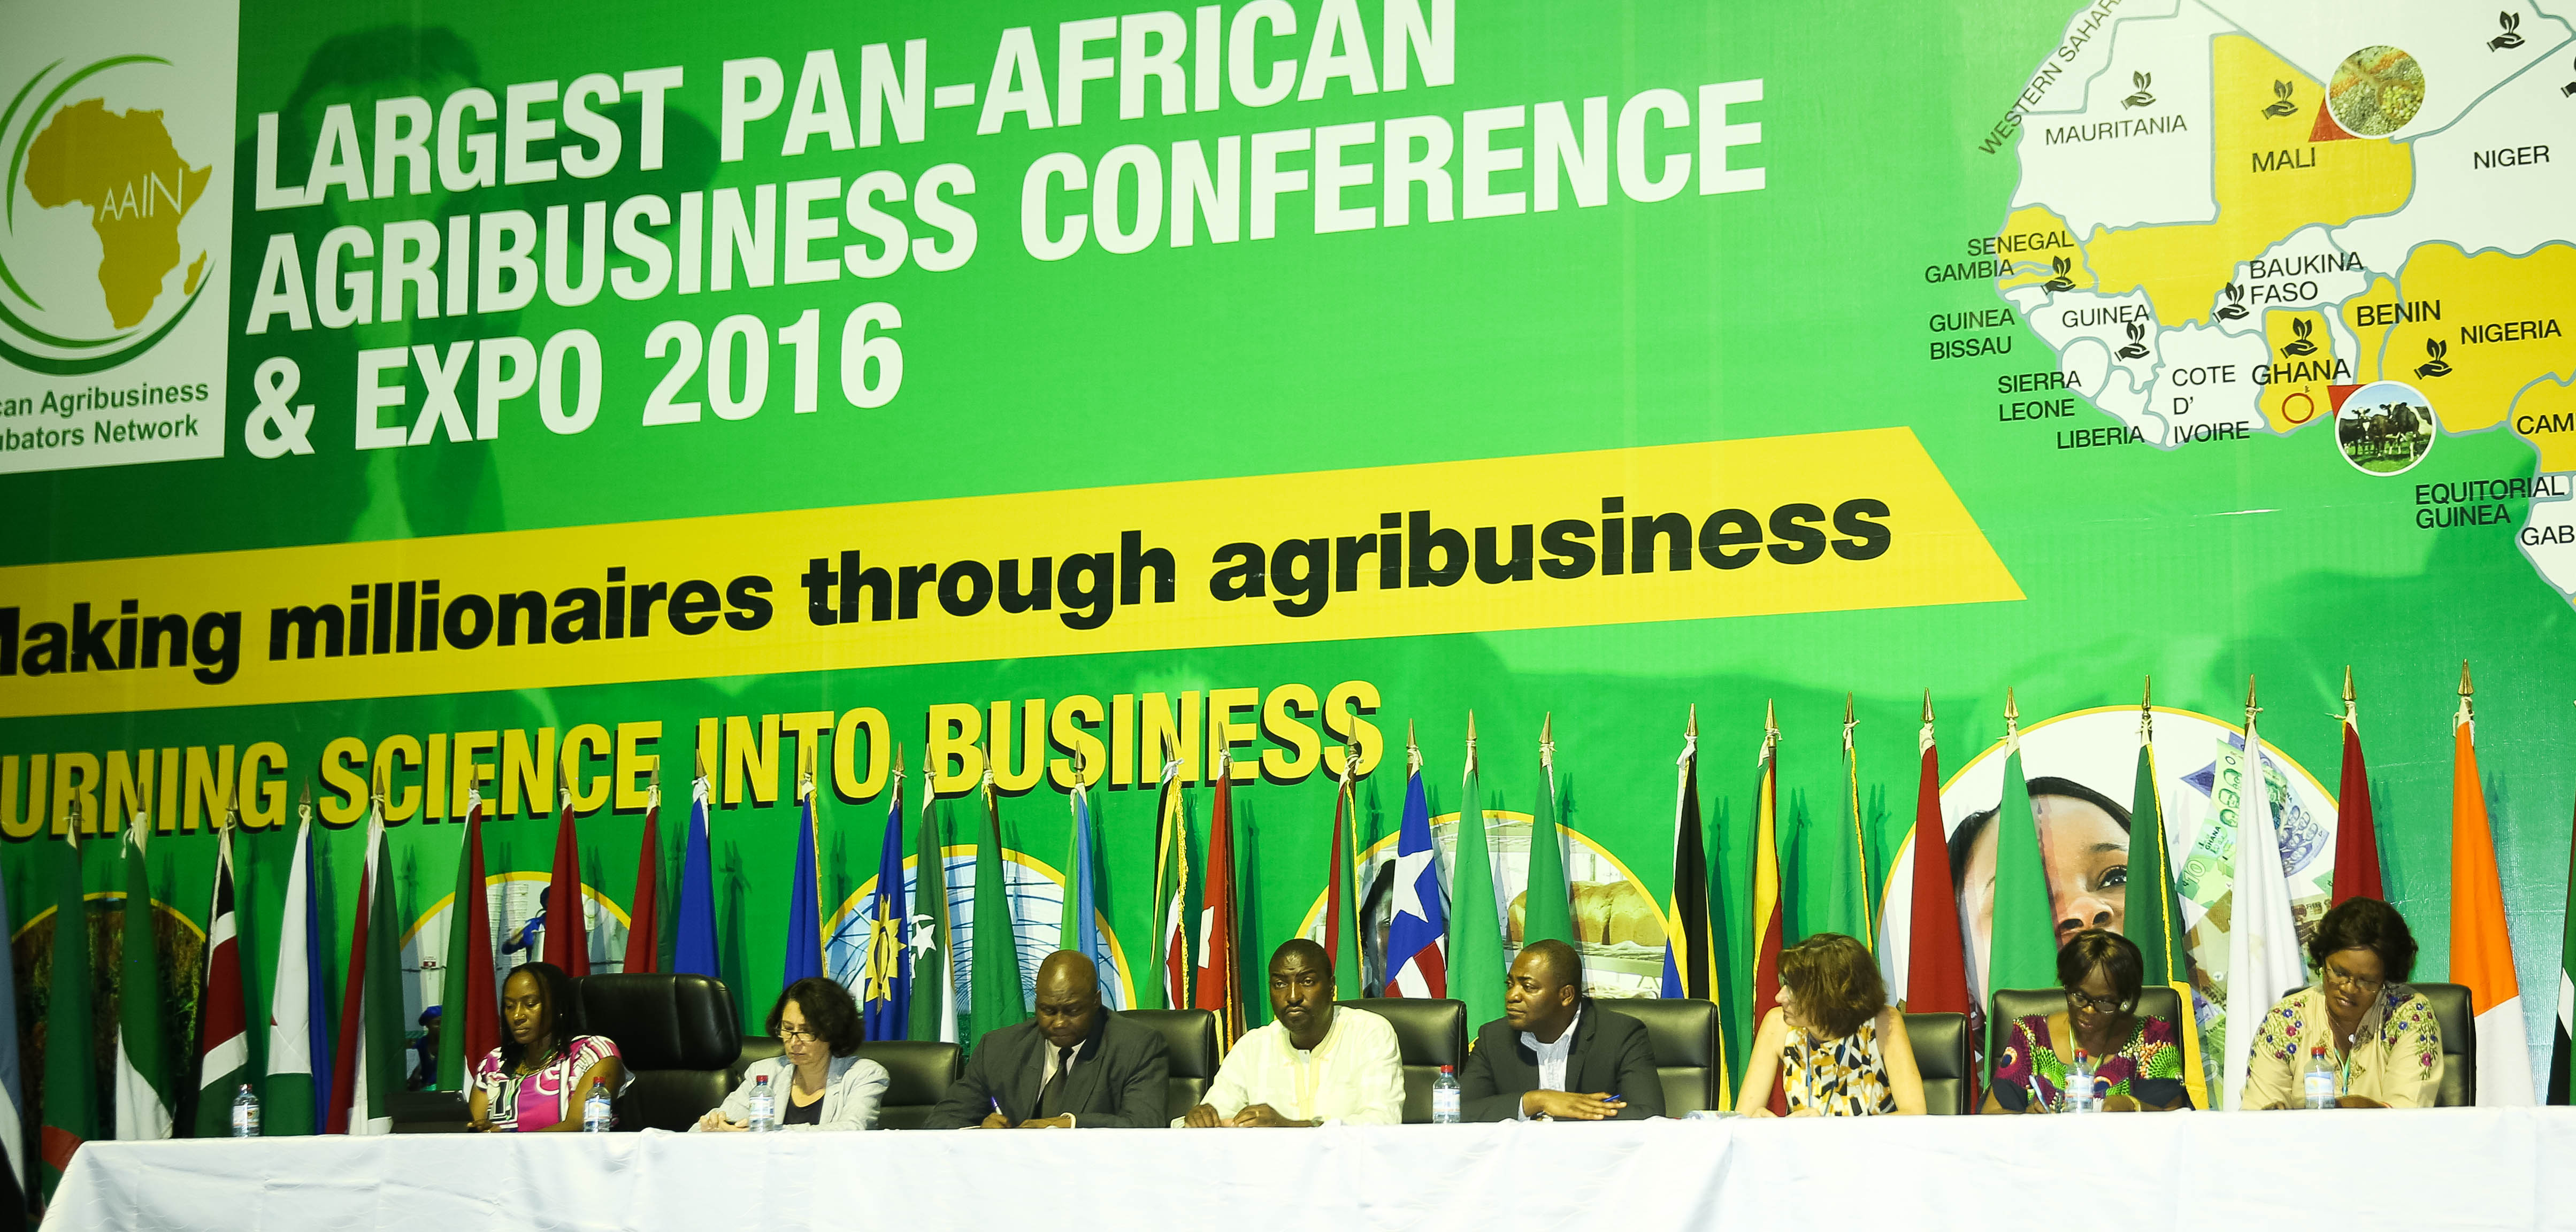 2nd Pan African Agri-Business Incubators Conference and Expo